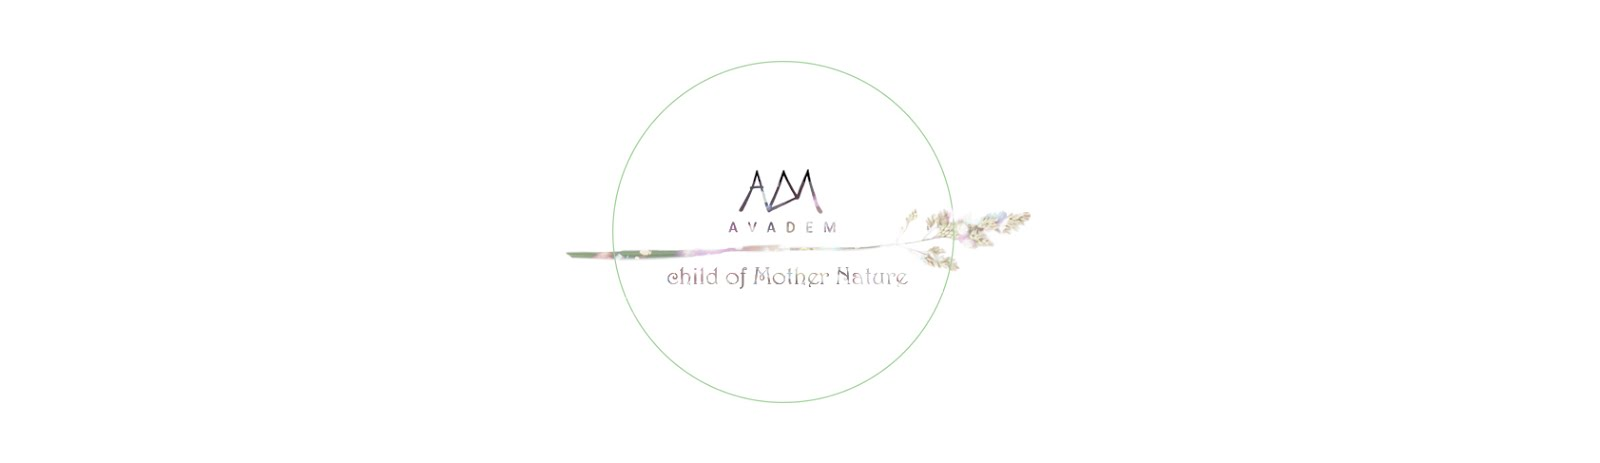 AVADEM - child of Mother Nature